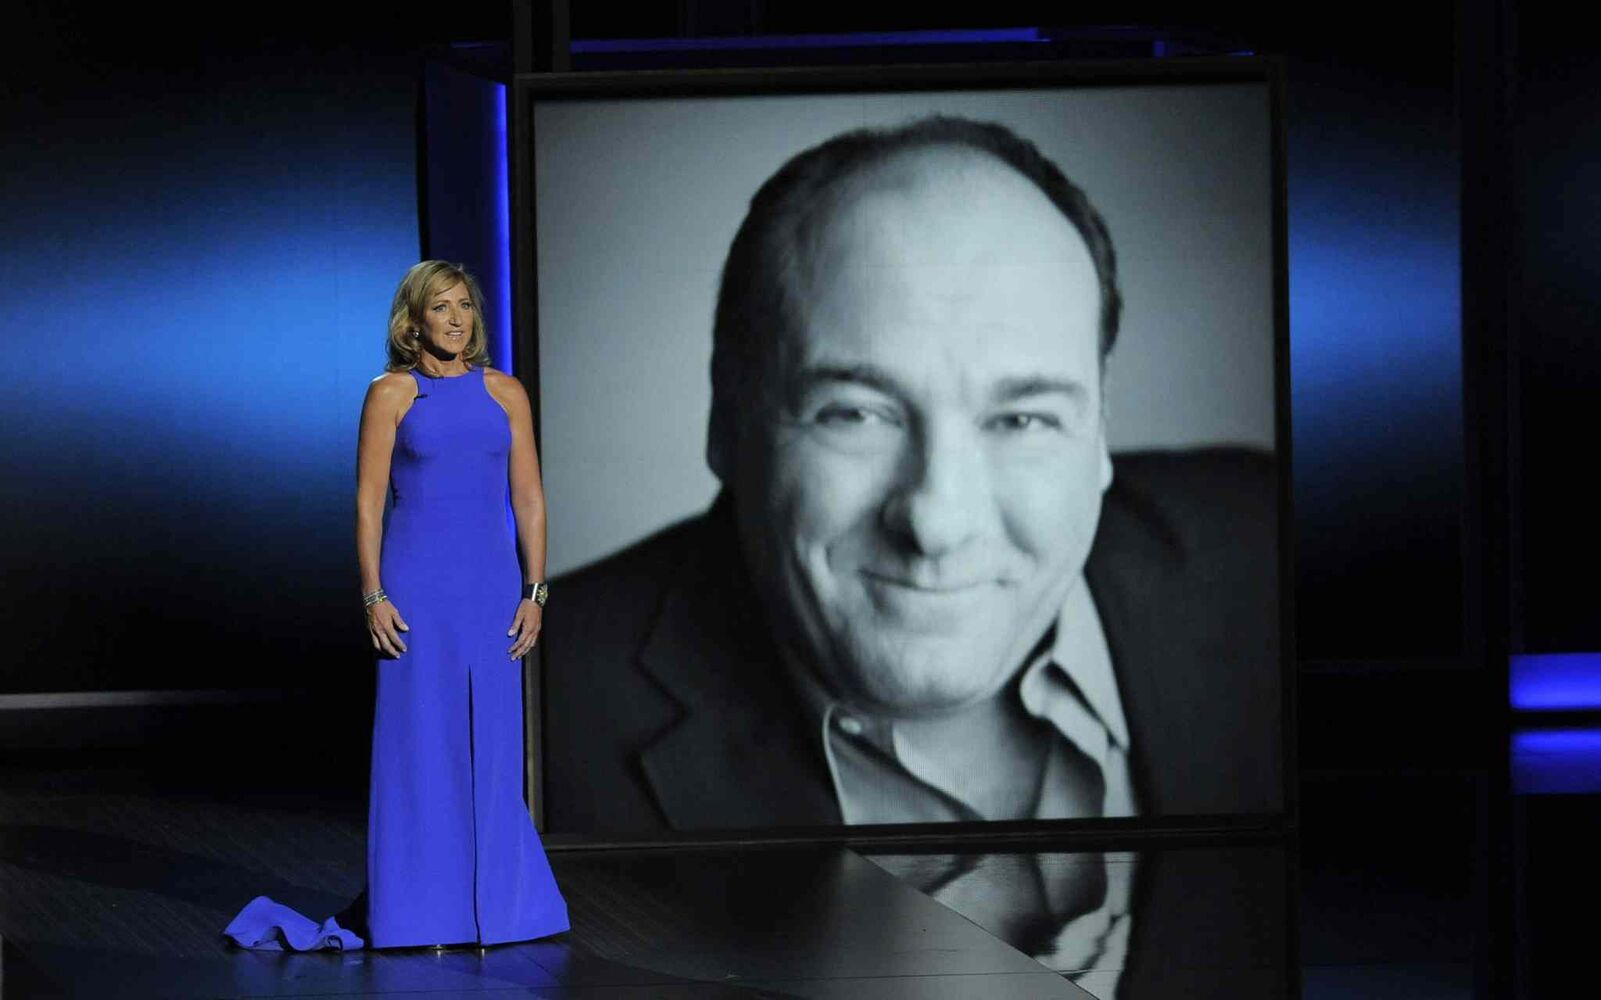 Edie Falco presents a tribute to James Gandolfini on stage. The actor, famous for his work in The Sopranos, died this year. (Chris Pizzello / The Assocaited Press)